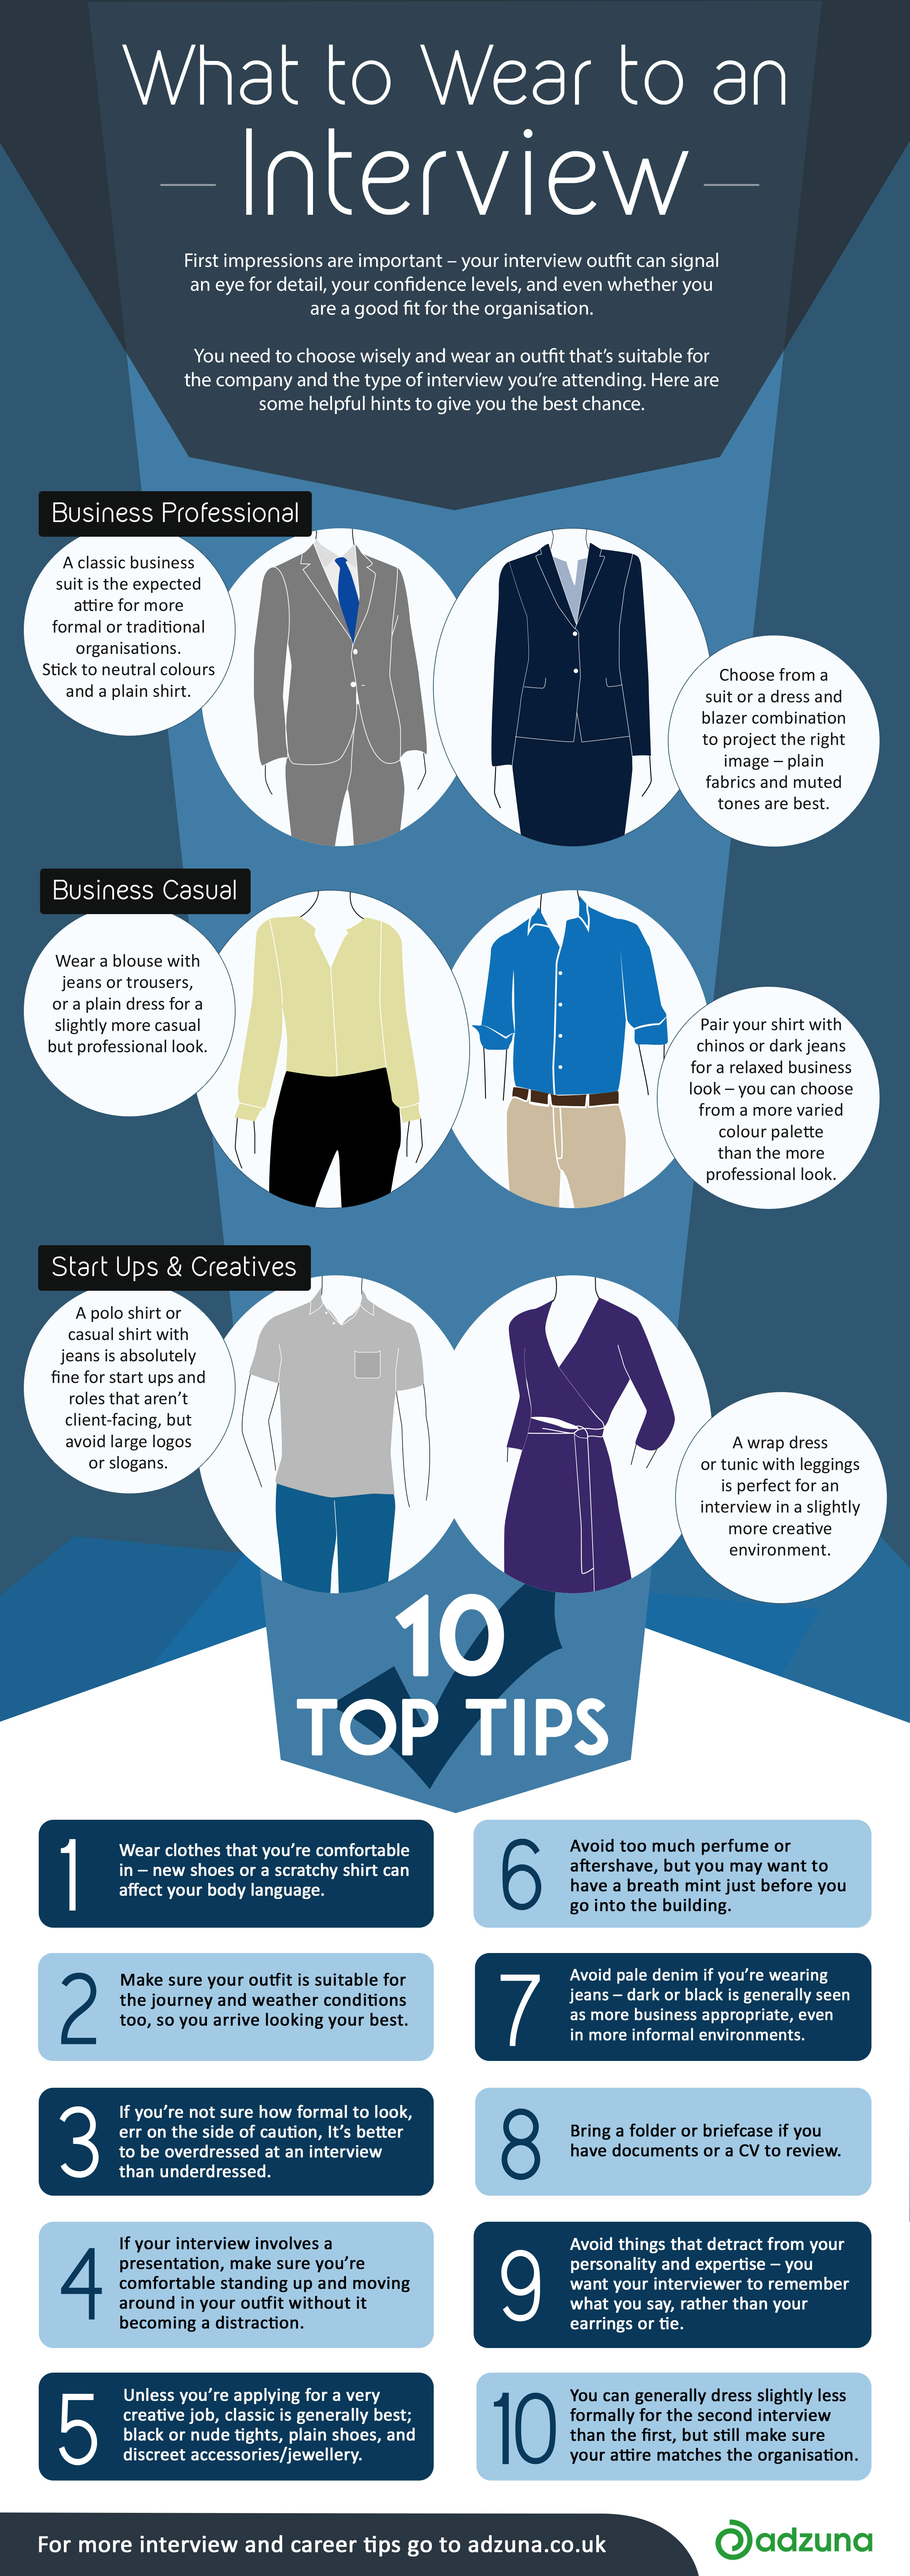 First Impressions are Most Important: How to Dress for an Interview - Infographic